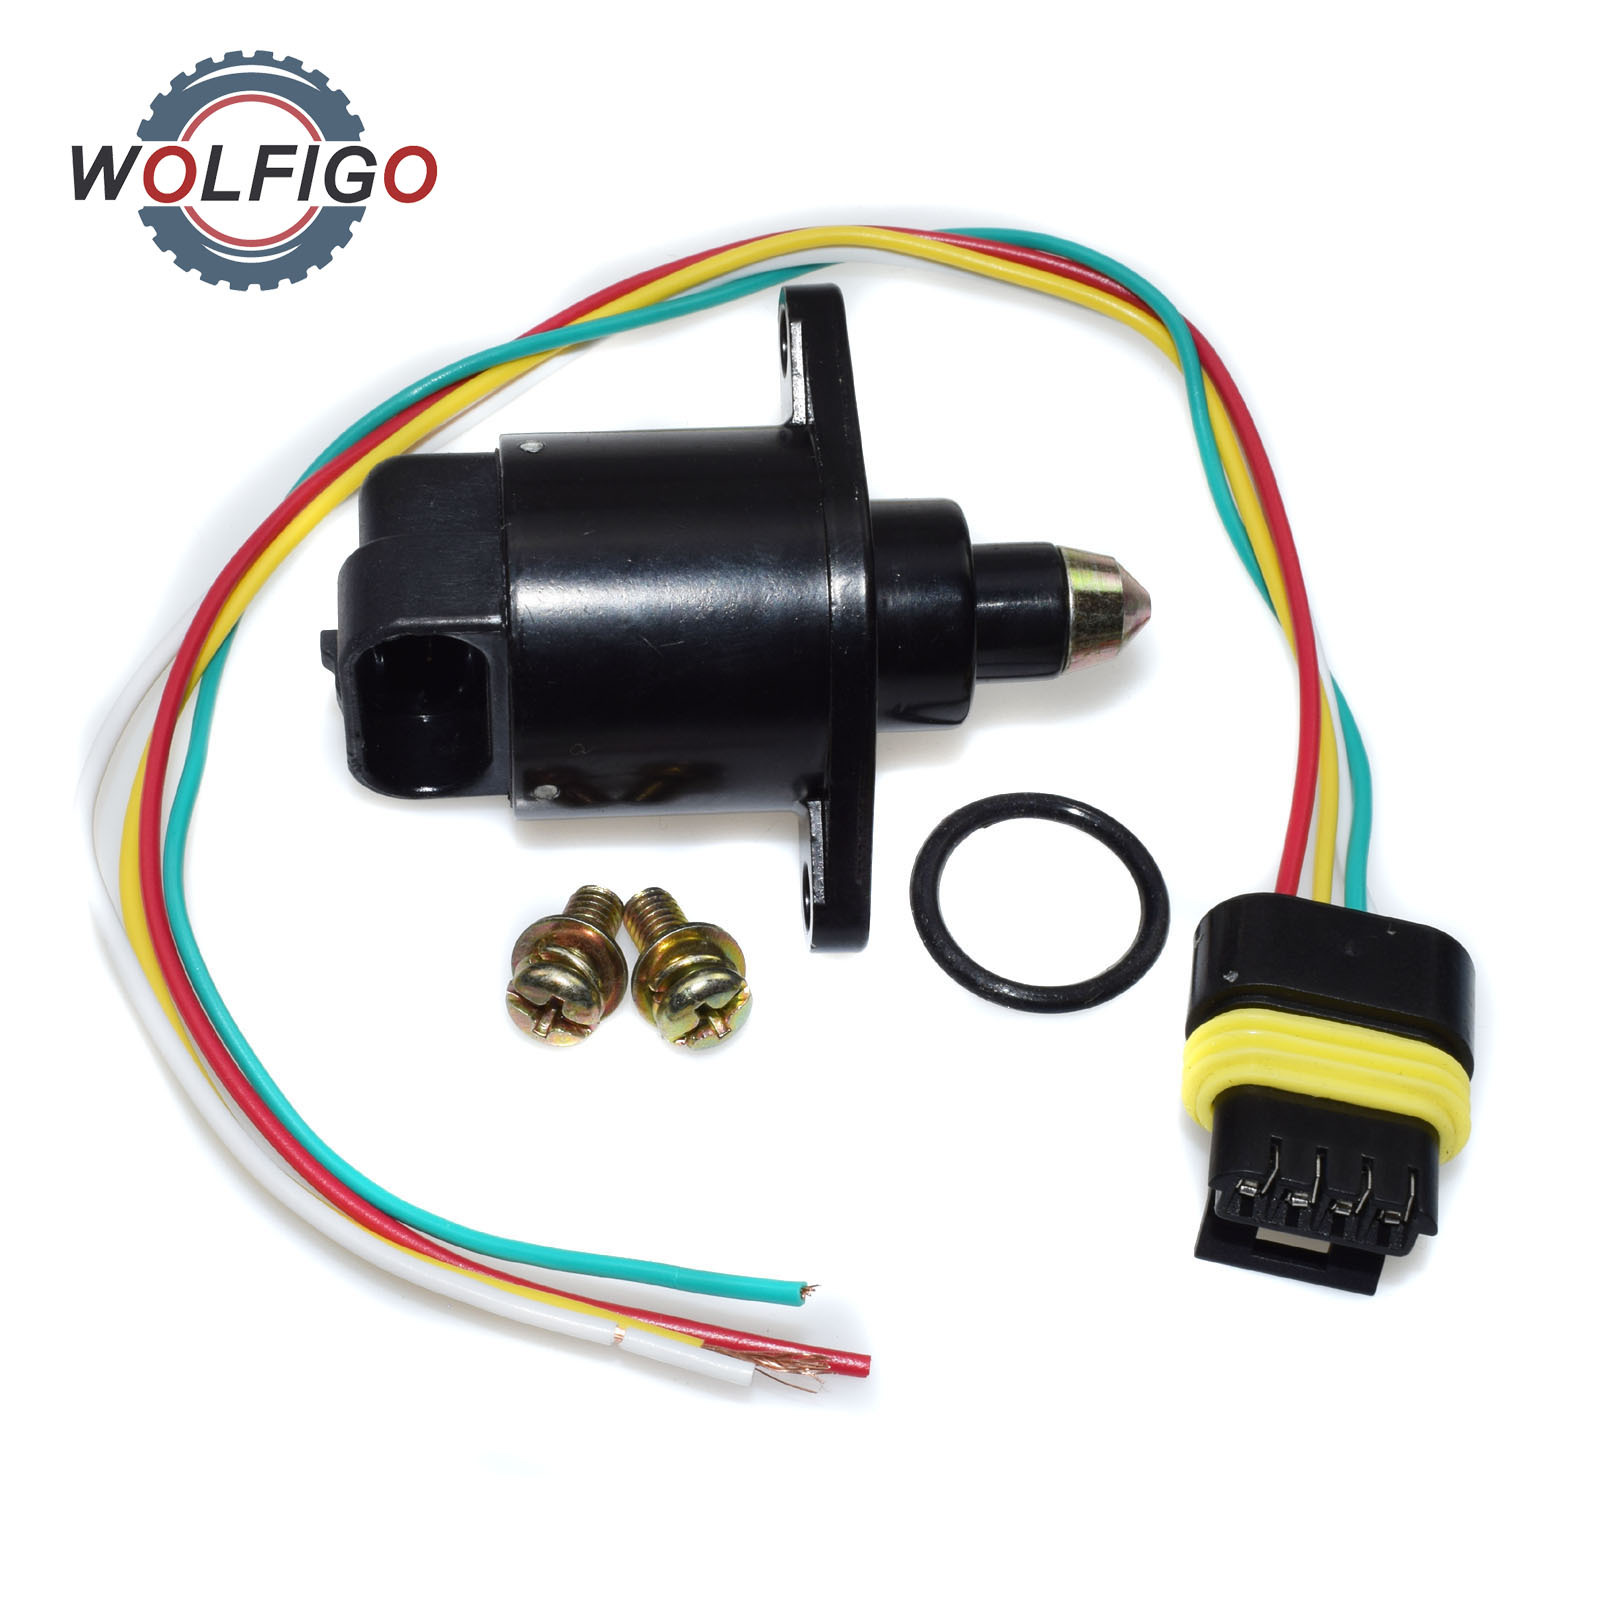 Strange Wolfigo Idle Air Control Valve With Pigtail Harness Connector For Wiring Digital Resources Remcakbiperorg